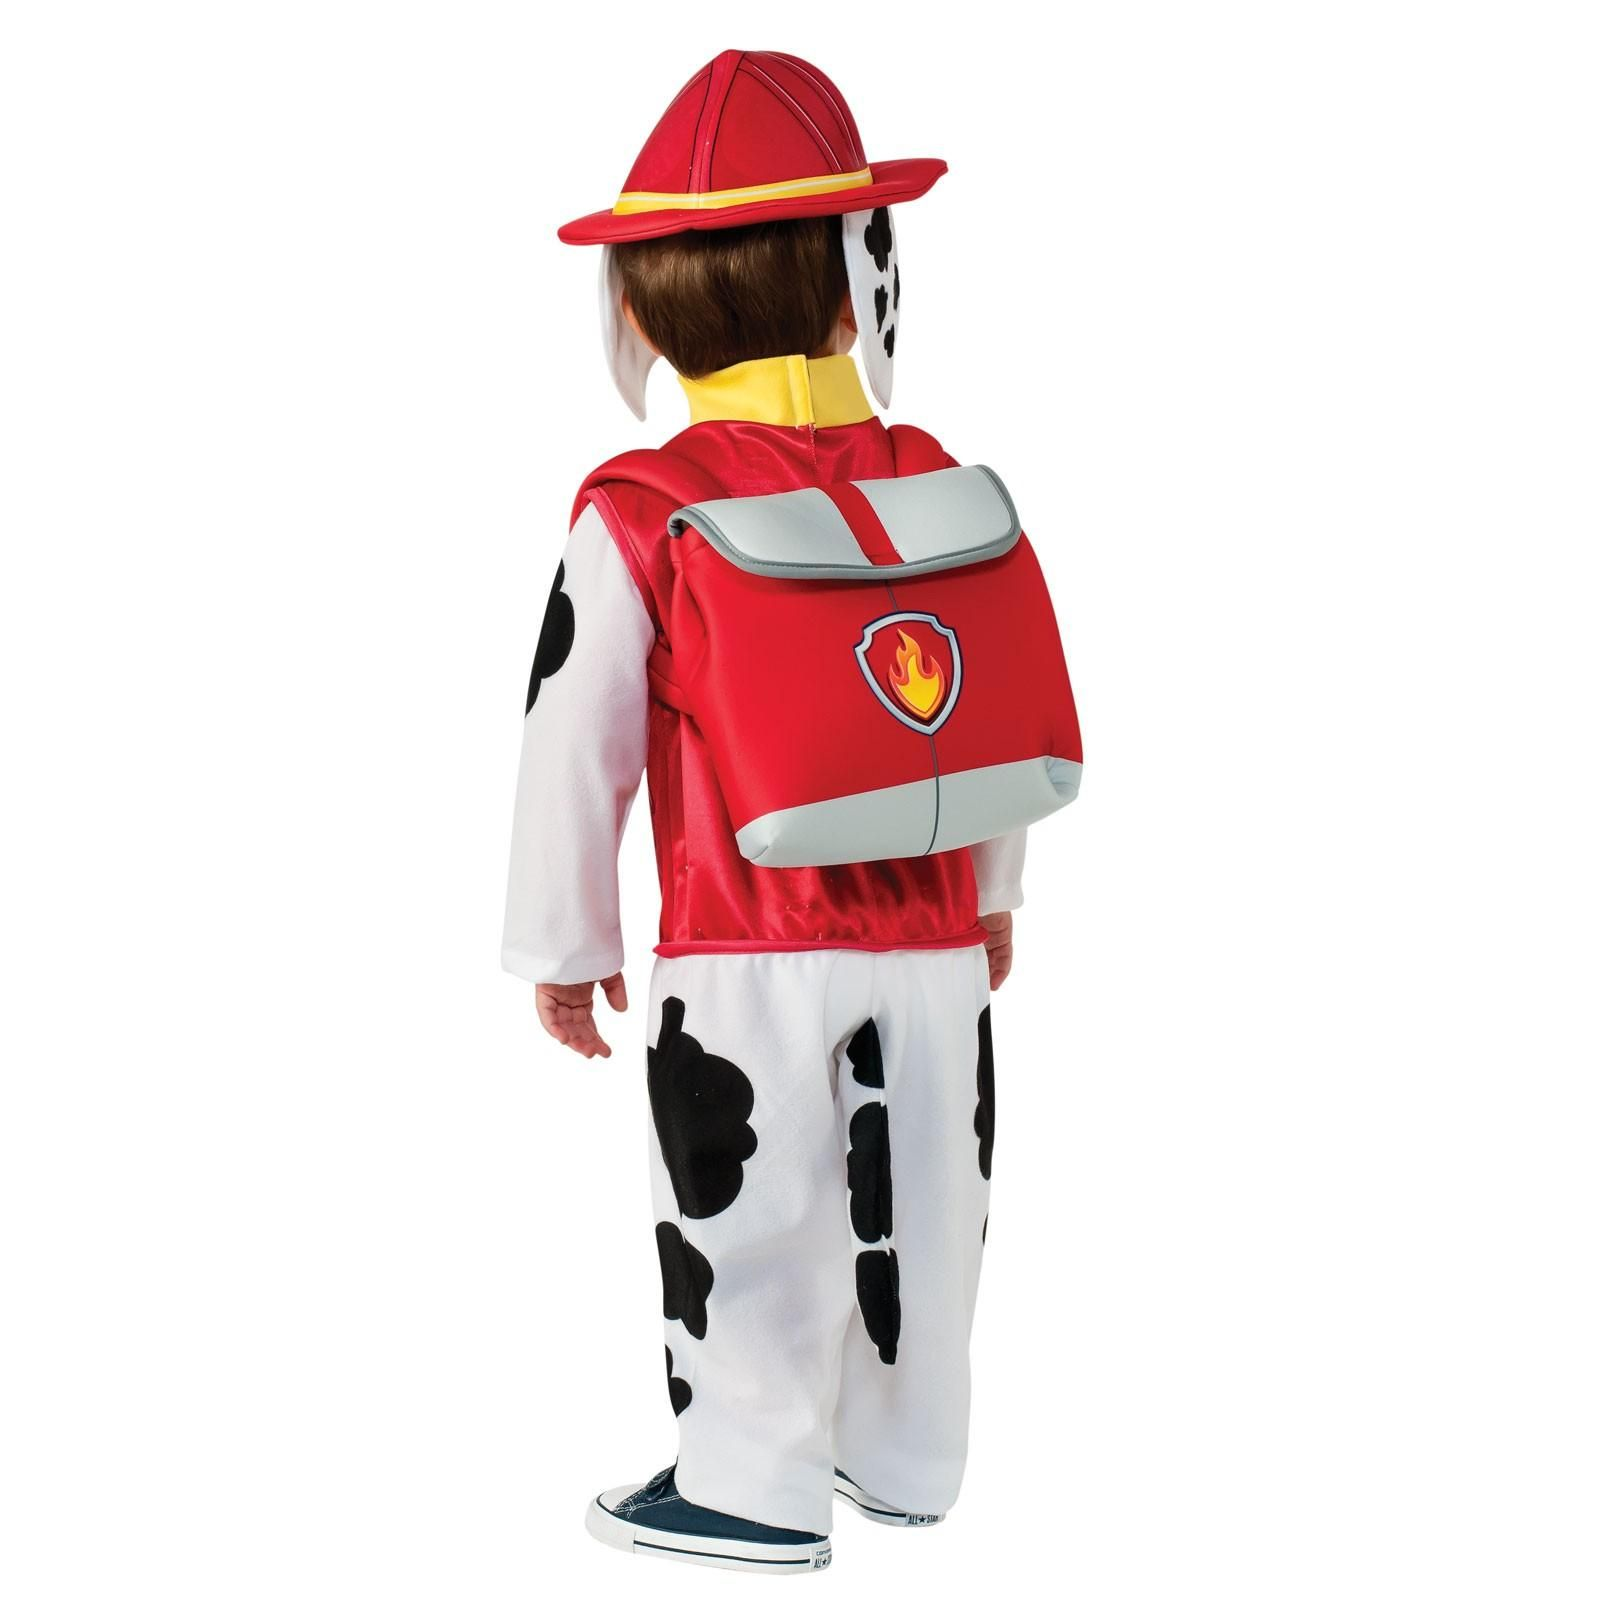 Paw Patrol Marshall Toddler/Child Costume | Paw patrol, Paw patrol ...